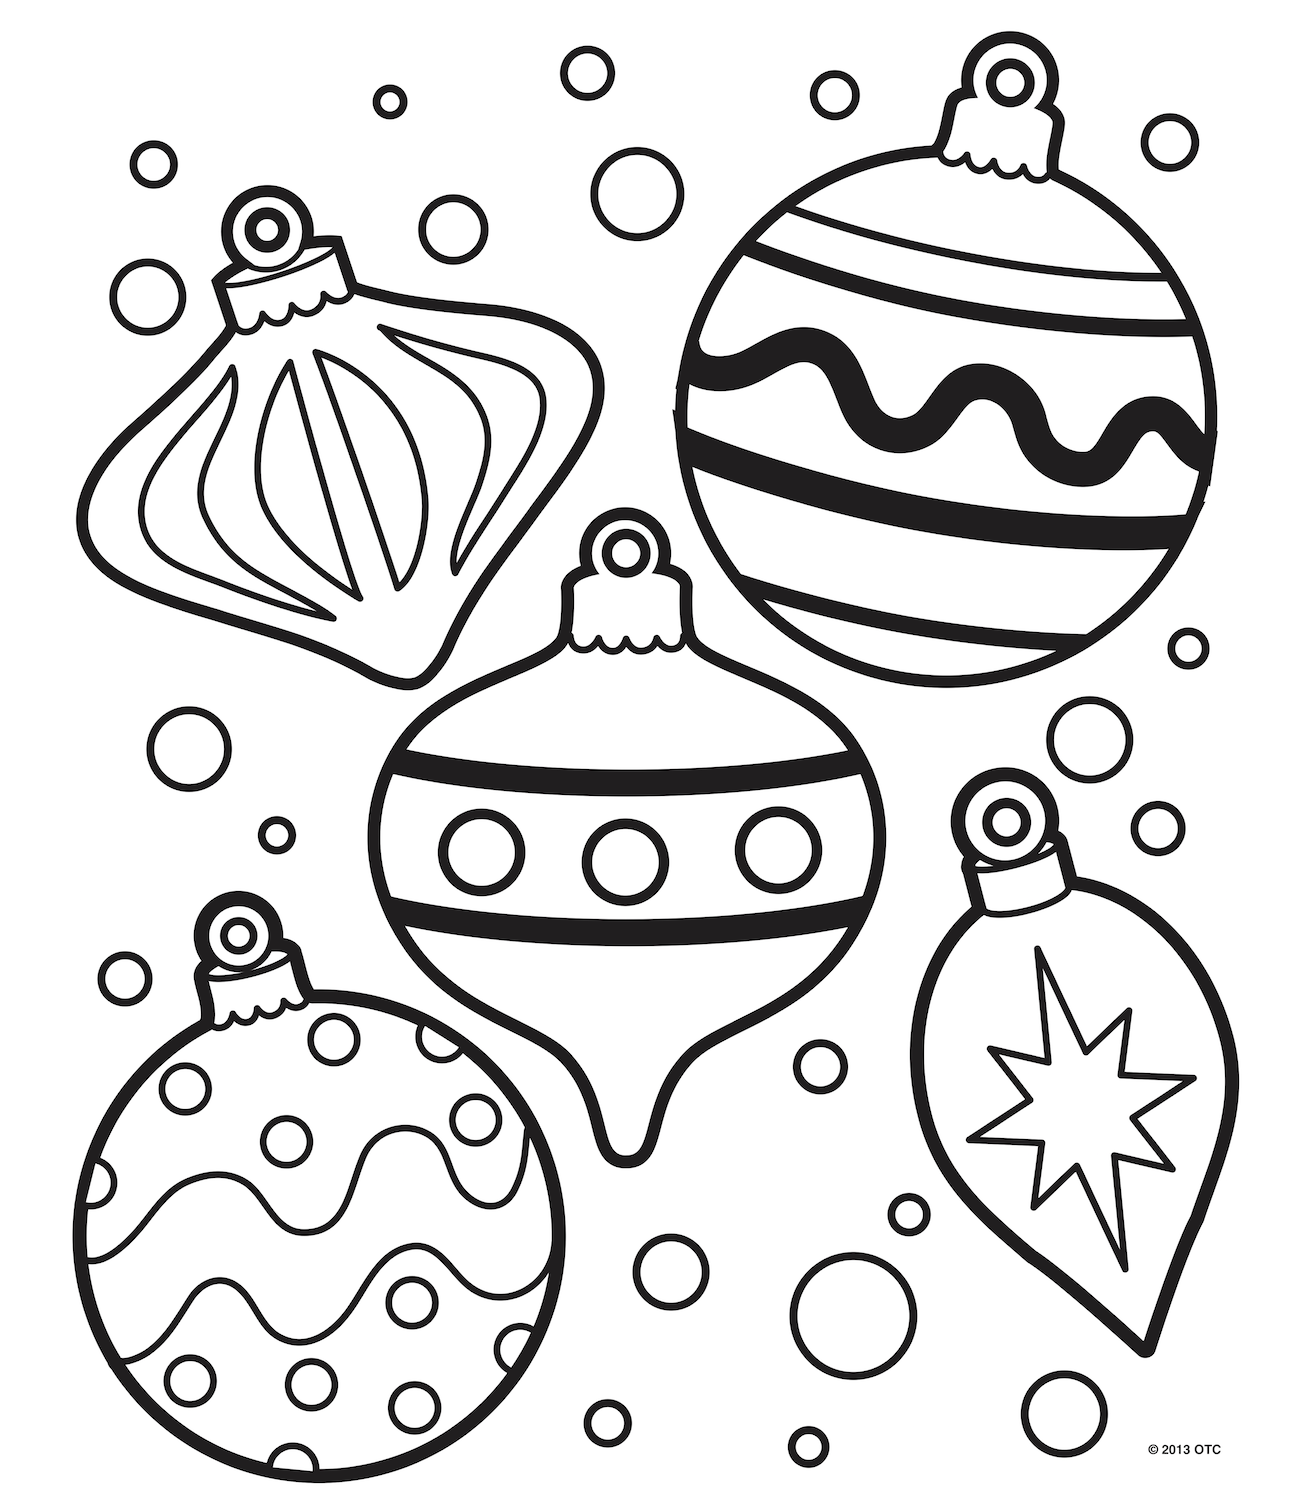 Christmas Coloring Pages Free Christmas Coloring Pages Printable Christmas Coloring Pages Christmas Ornament Coloring Page